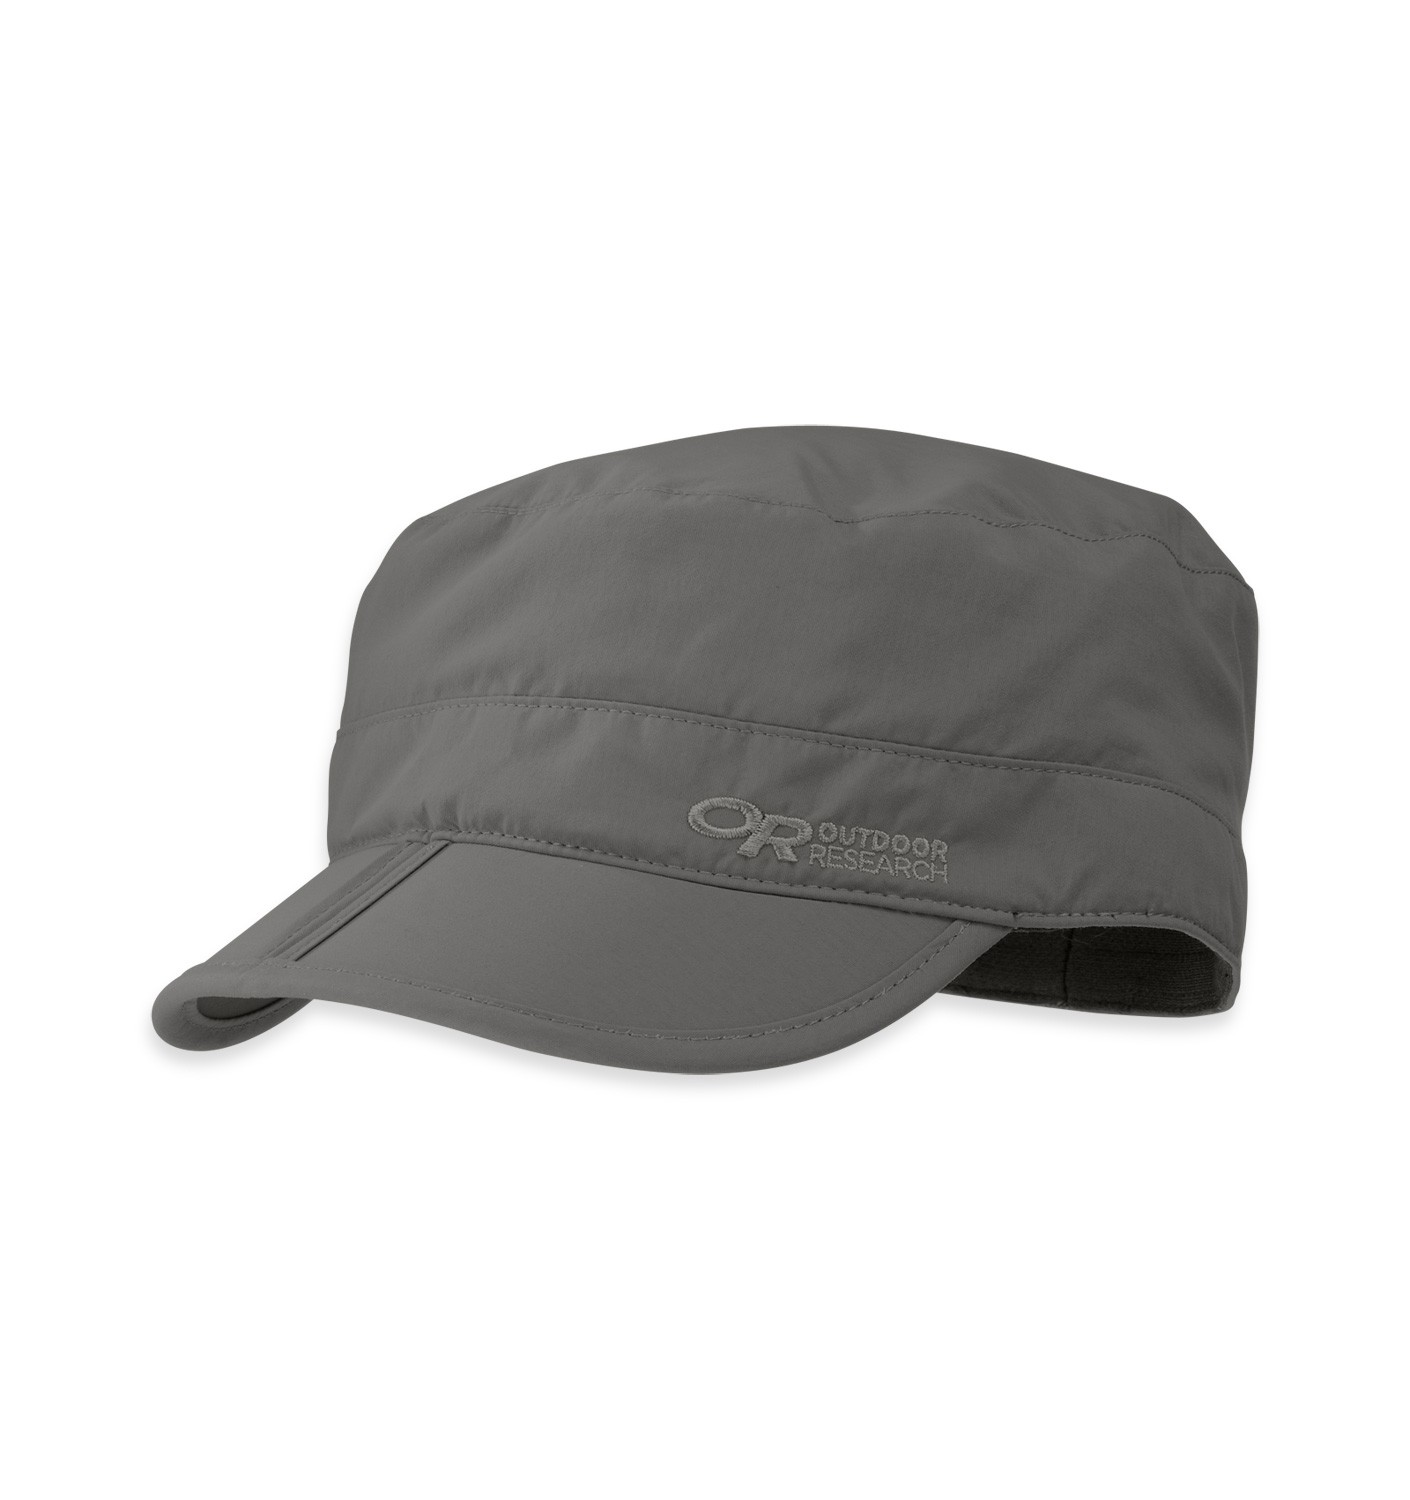 The street-styled Radar Pocket Cap shields you from the sun with UPF 50+  protection b5b10185f1c